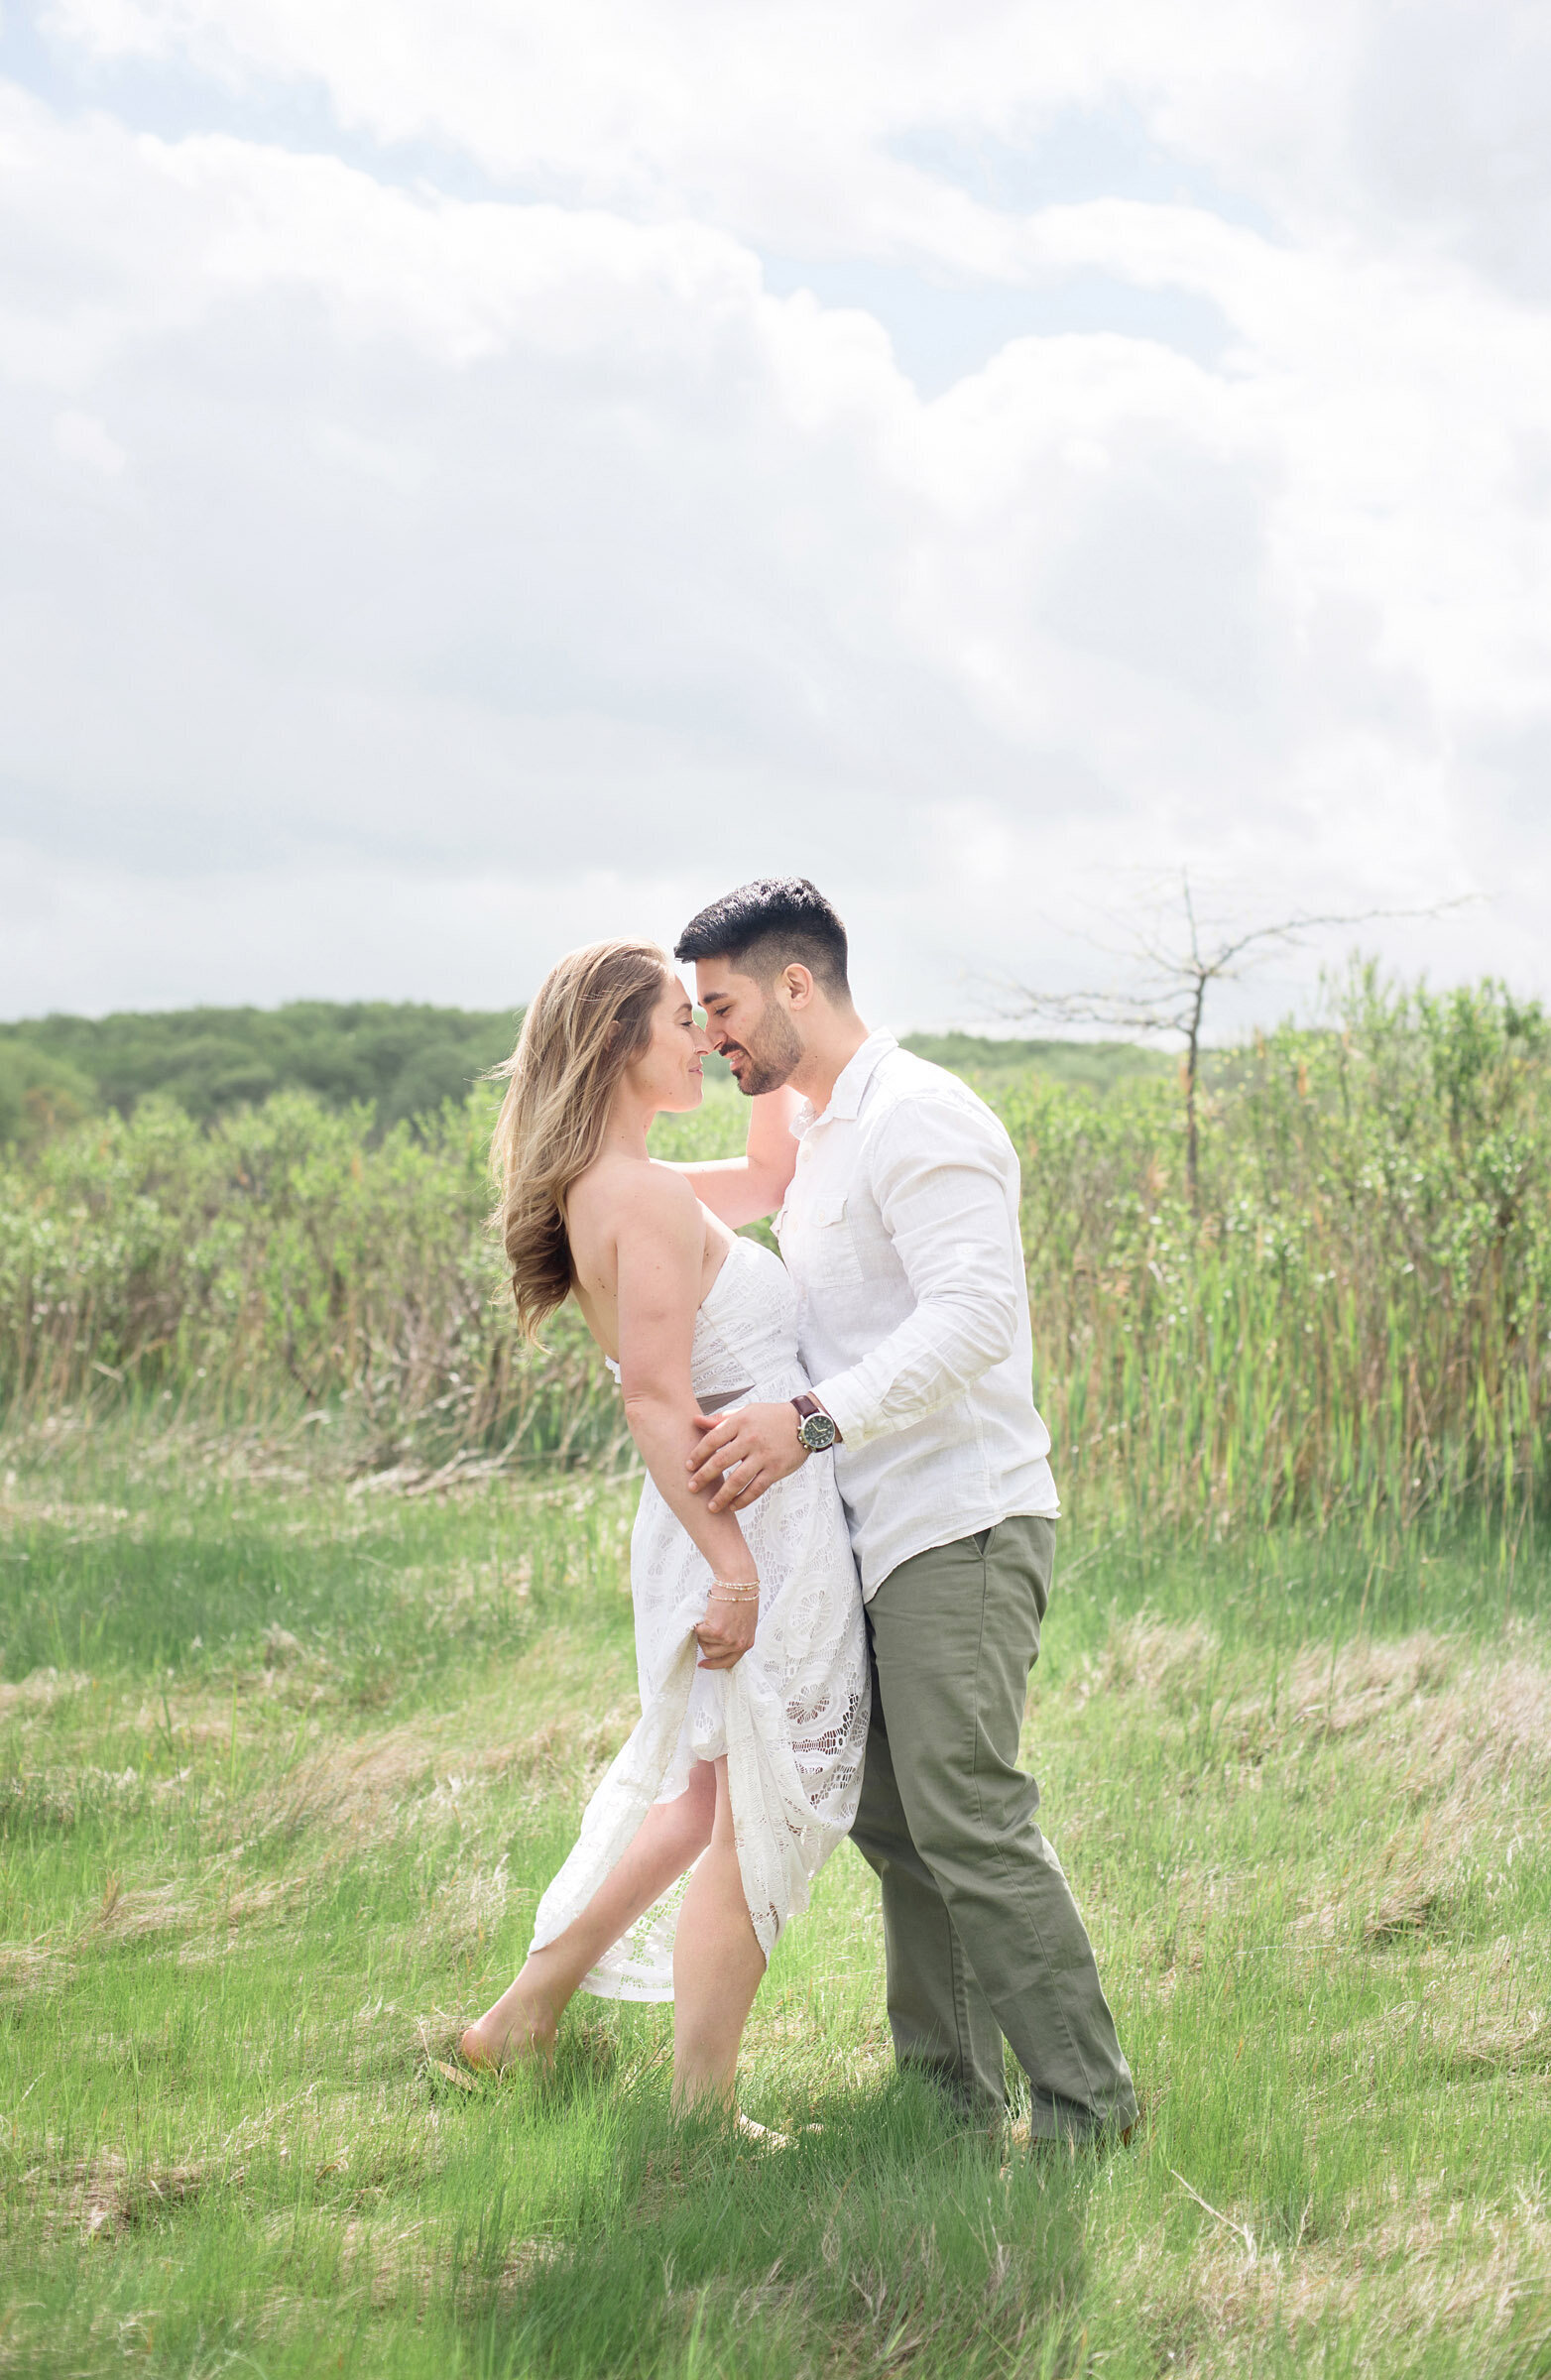 45-hudson-valley-ny-engagement-photographer